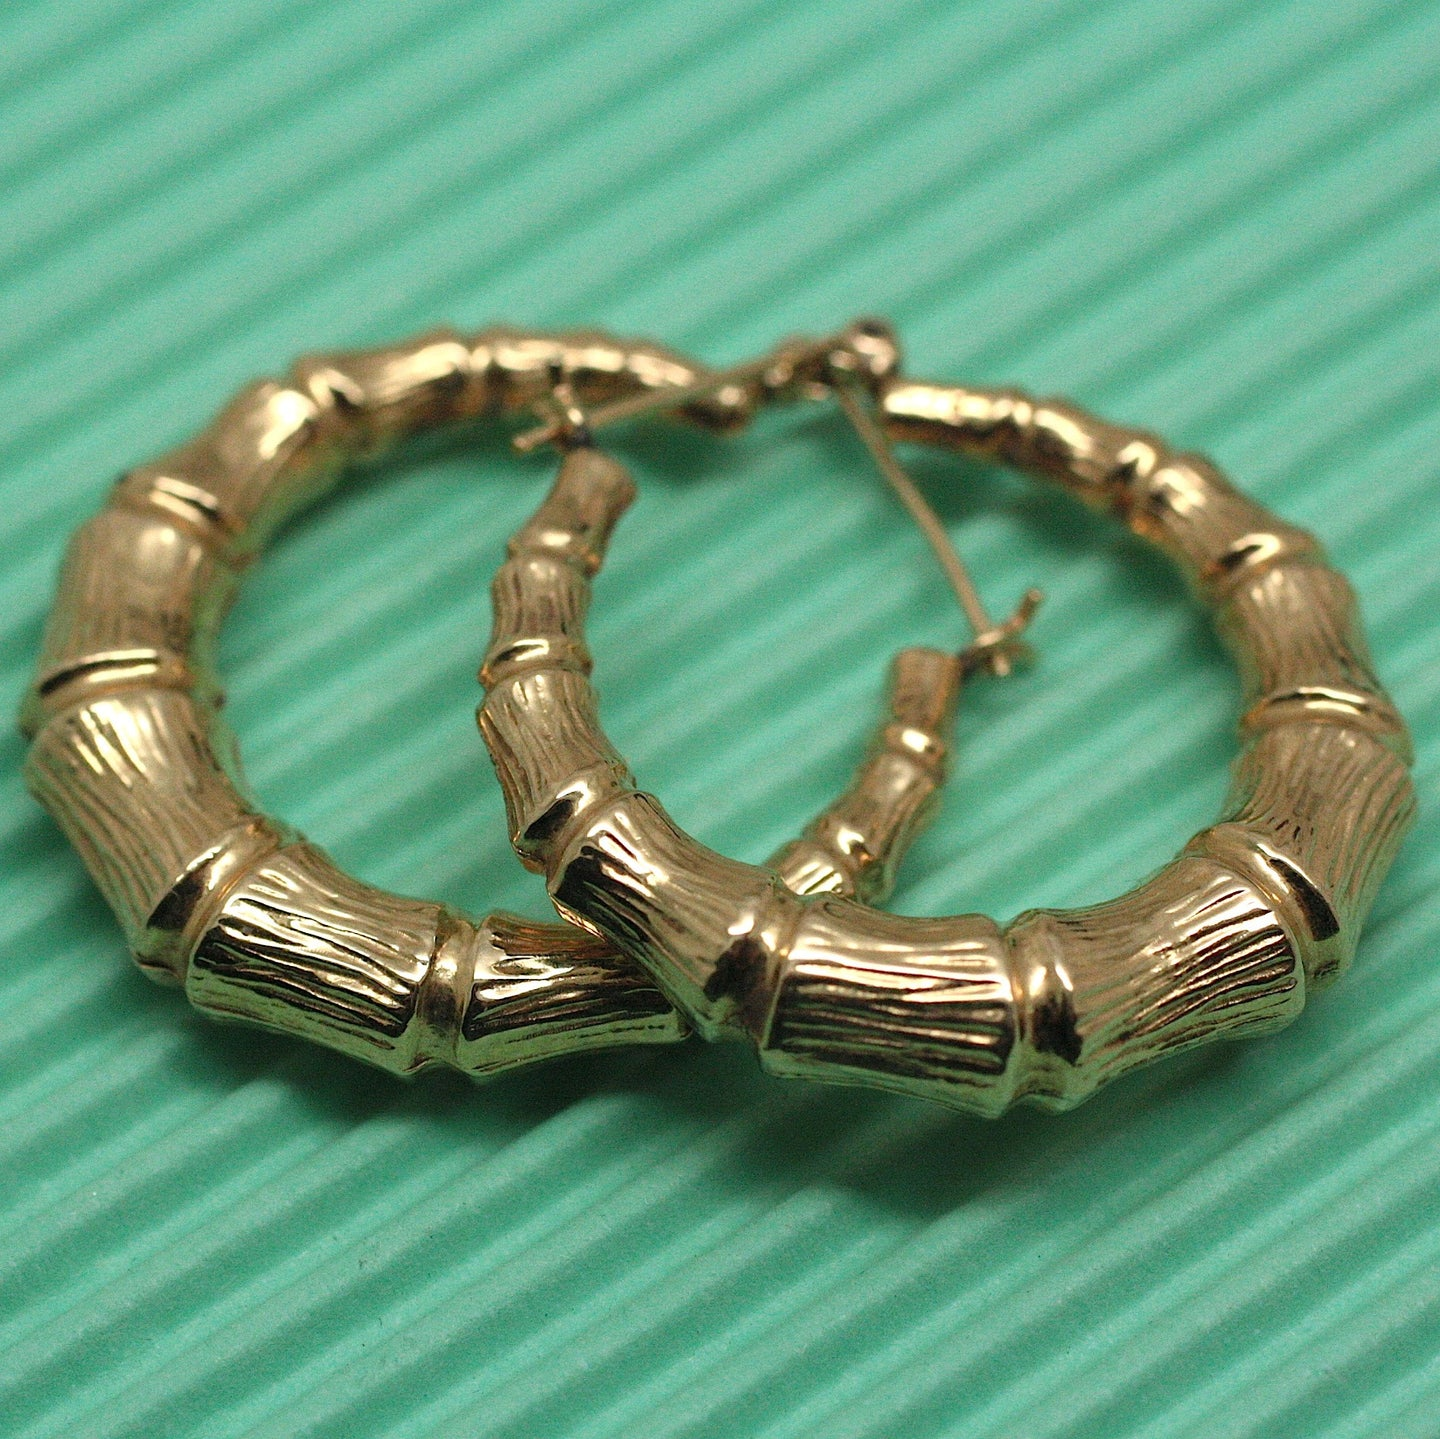 14K bamboo-style hoop earrings